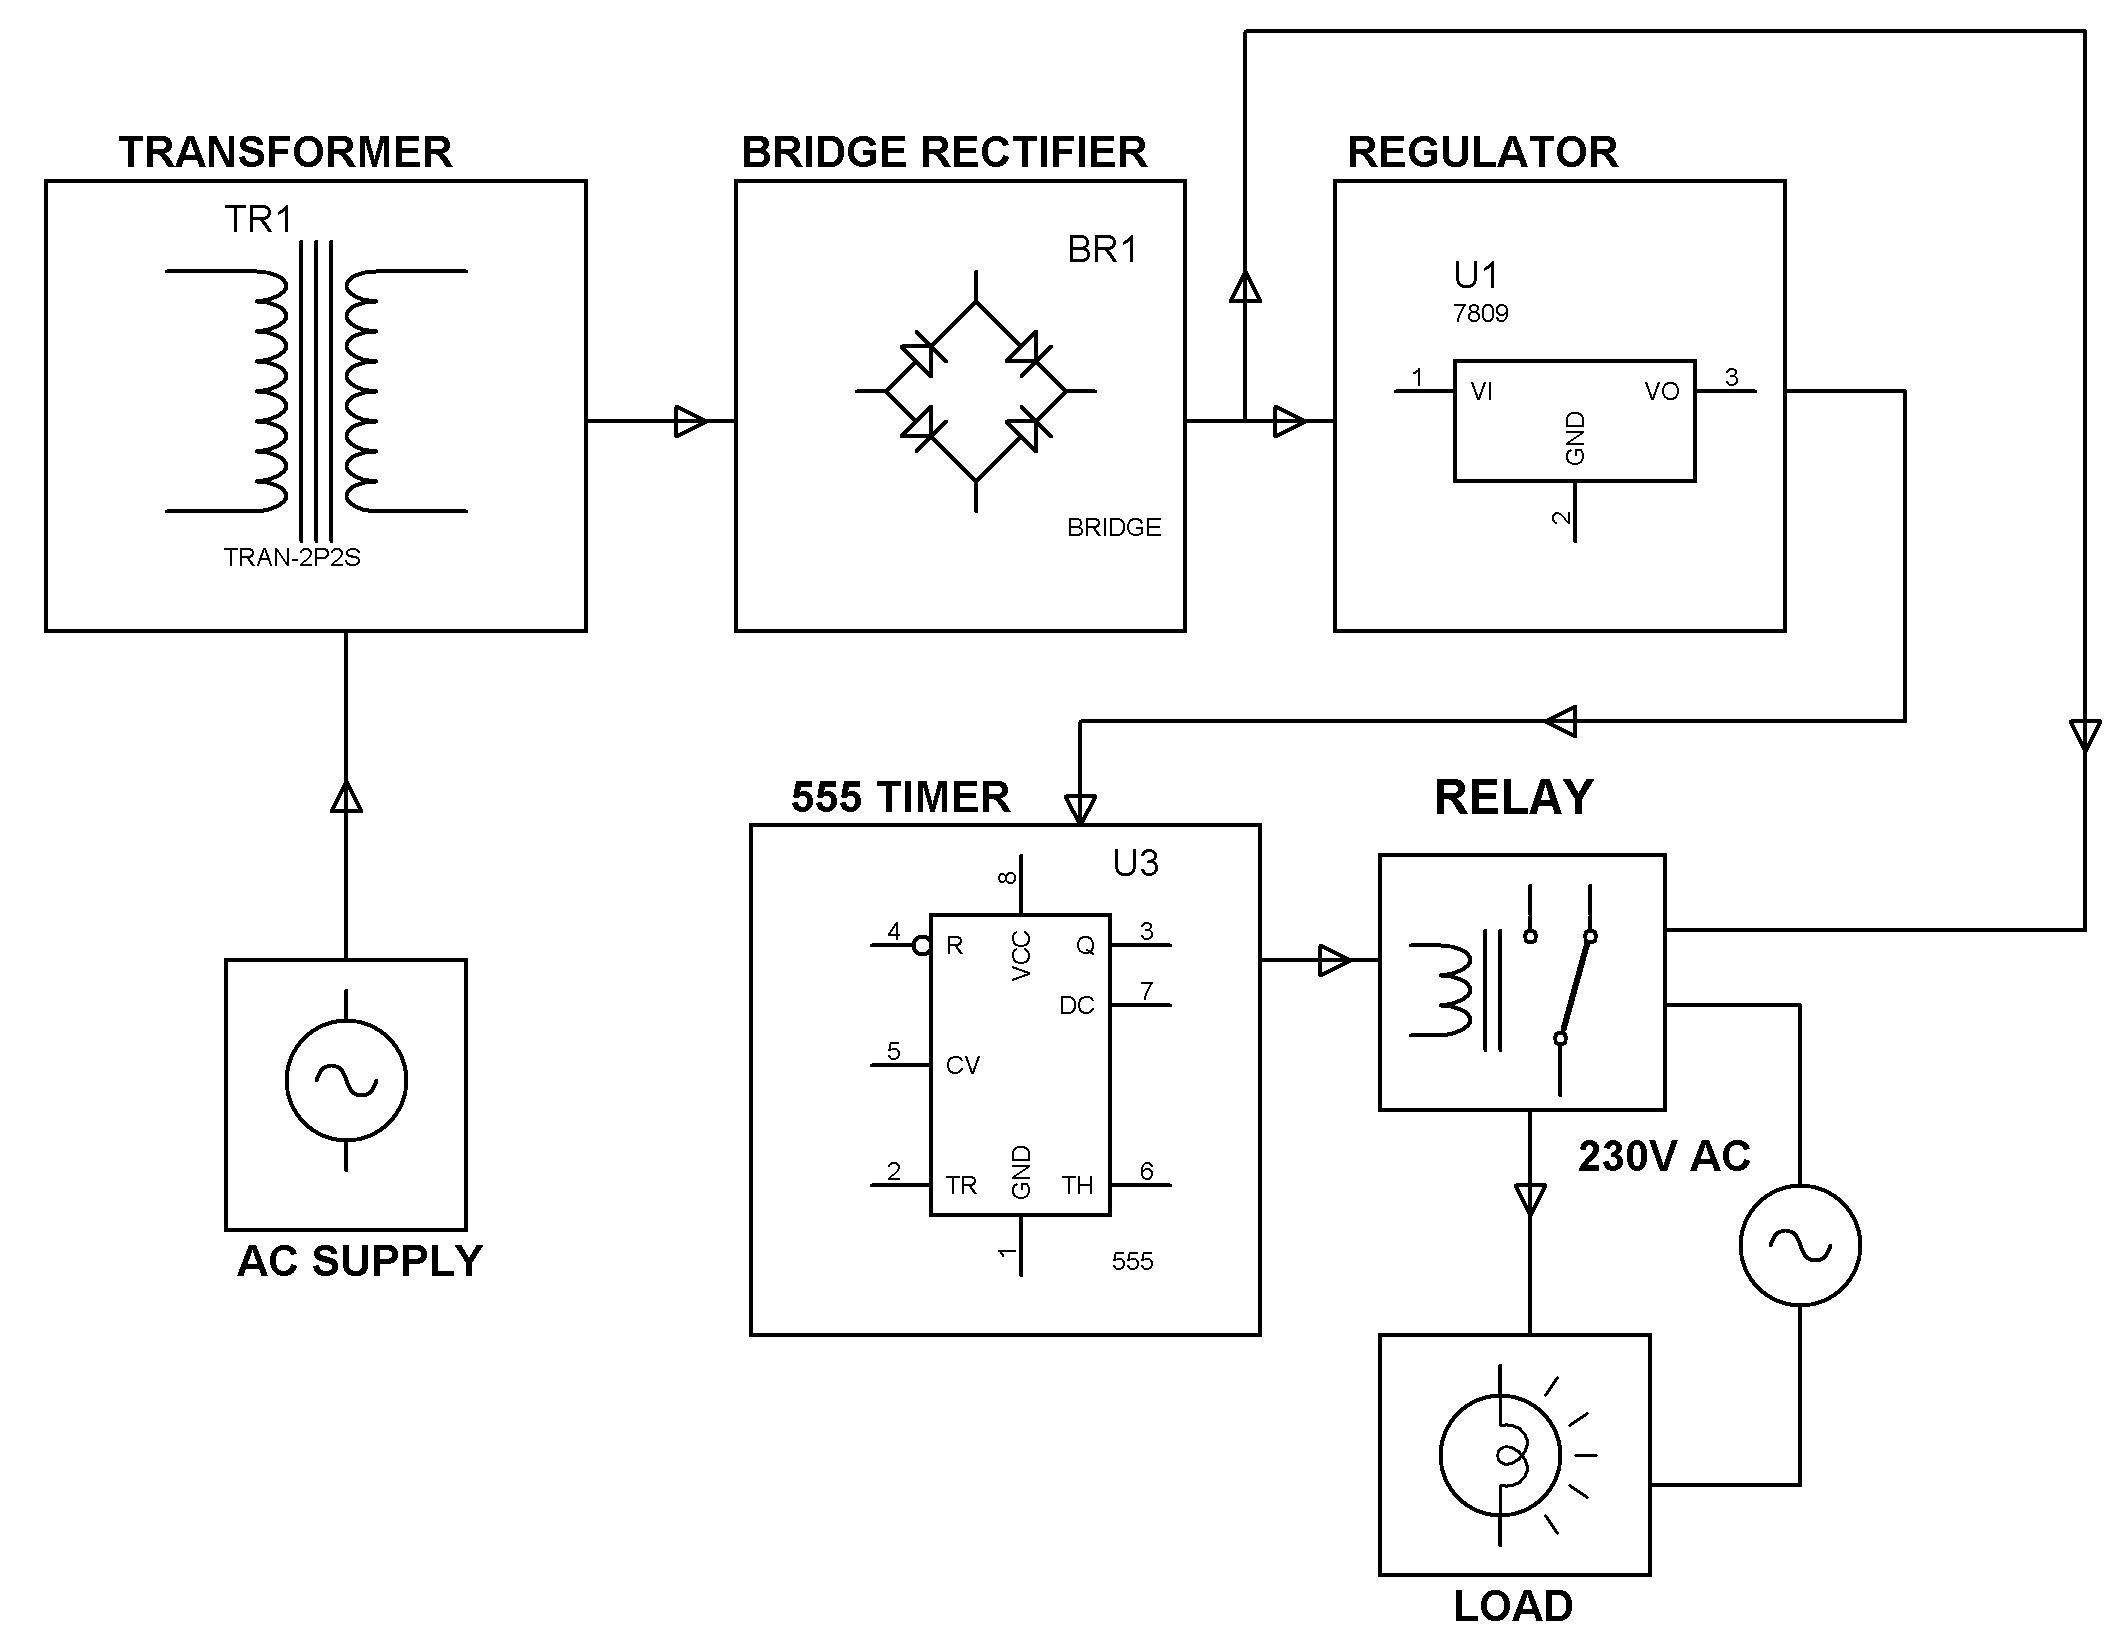 Time Delay Relay Wiring Diagram | Free Wiring Diagram on thermistor wiring diagram, limit switch wiring diagram, fuse wiring diagram, time delay relay schematic, air conditioner motor wiring diagram, time delay relay operation, valve wiring diagram, control wiring diagram, controller wiring diagram, time relay product, basic relay diagram, general purpose switching relay diagram, time delay module, relay configuration diagram, timer wiring diagram, contactor wiring diagram, touch switch wiring diagram, transformer wiring diagram, relay schematic diagram, relay switch diagram,